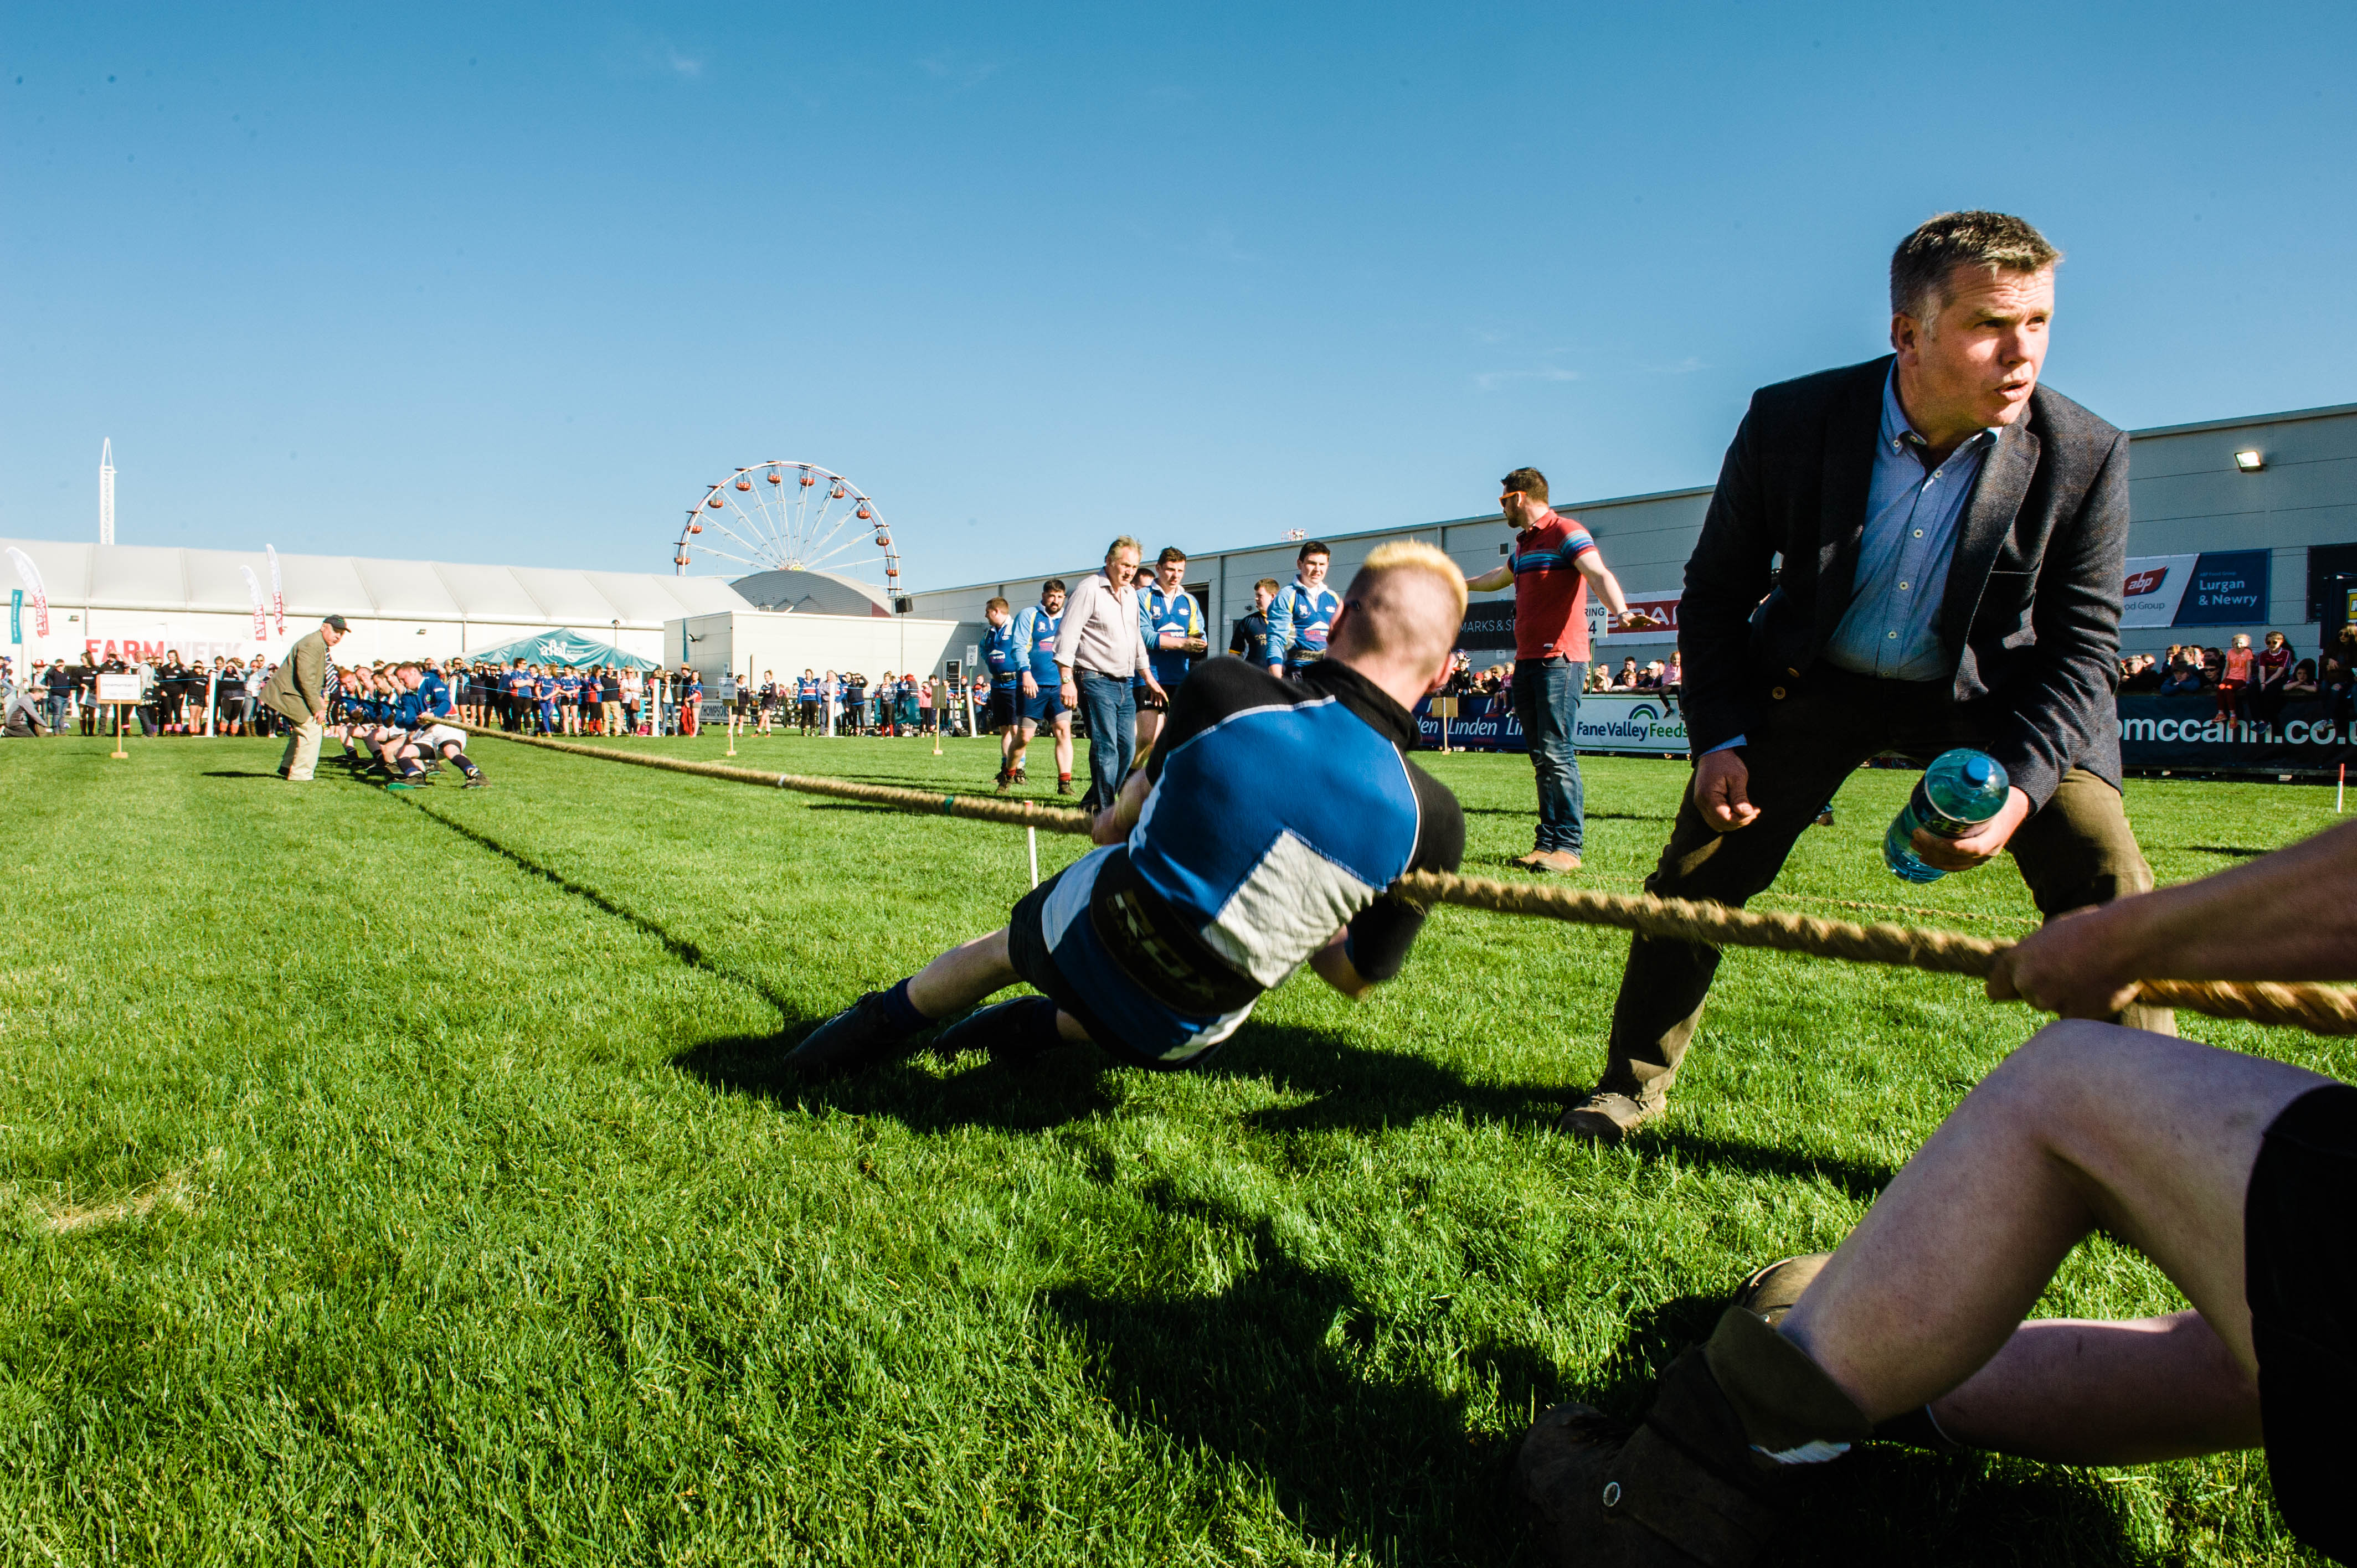 tug of war at The Balmoral Show in belfast